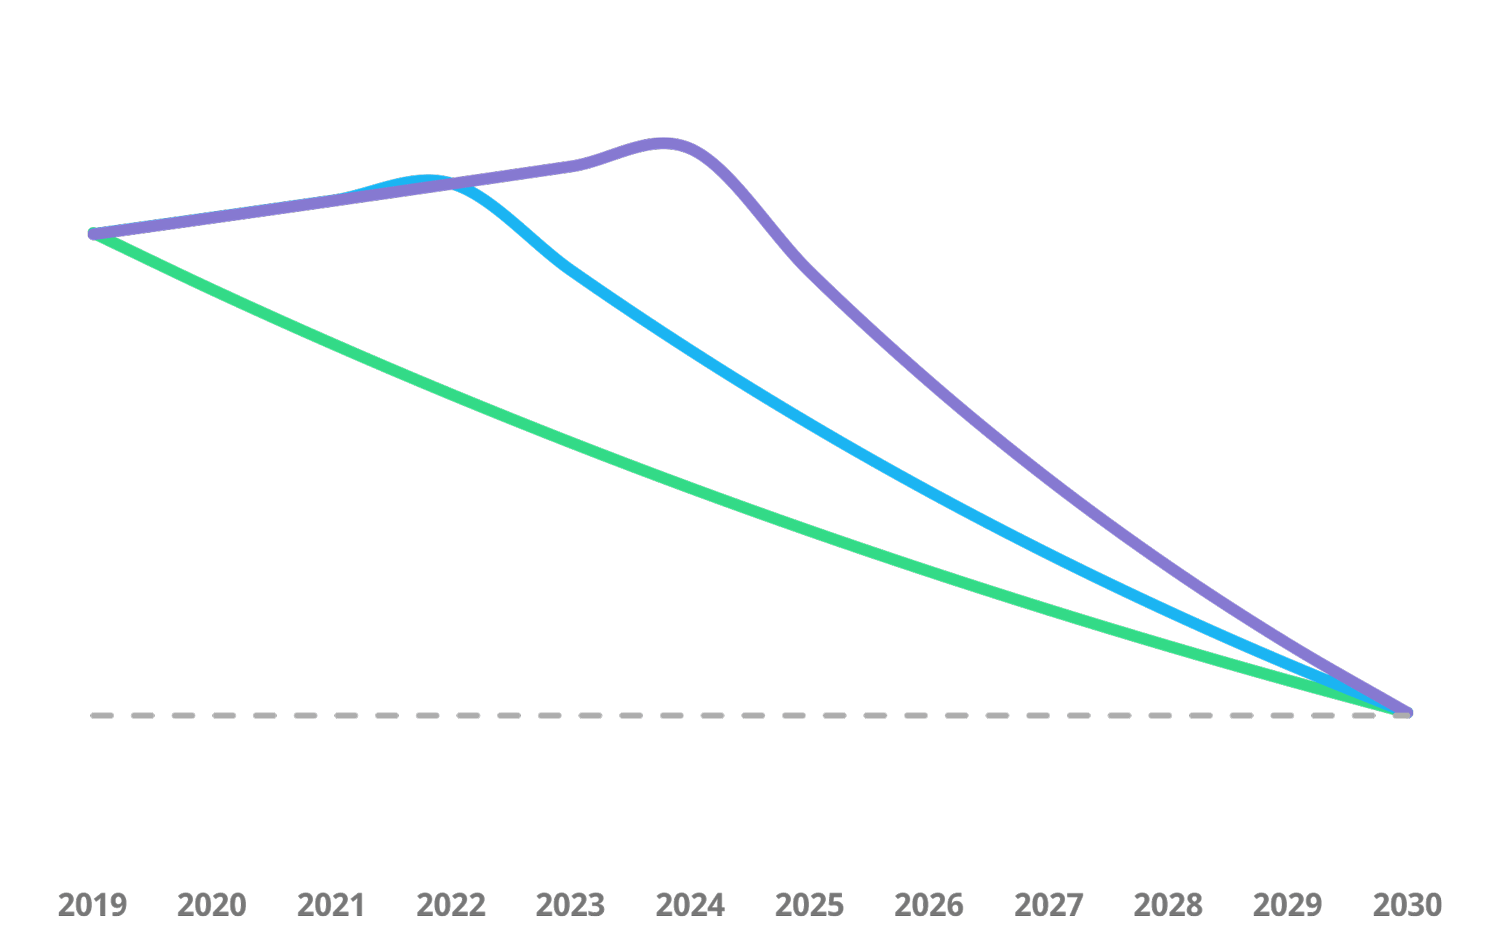 Emission reductions required to avoid disastrous consequences from climate change